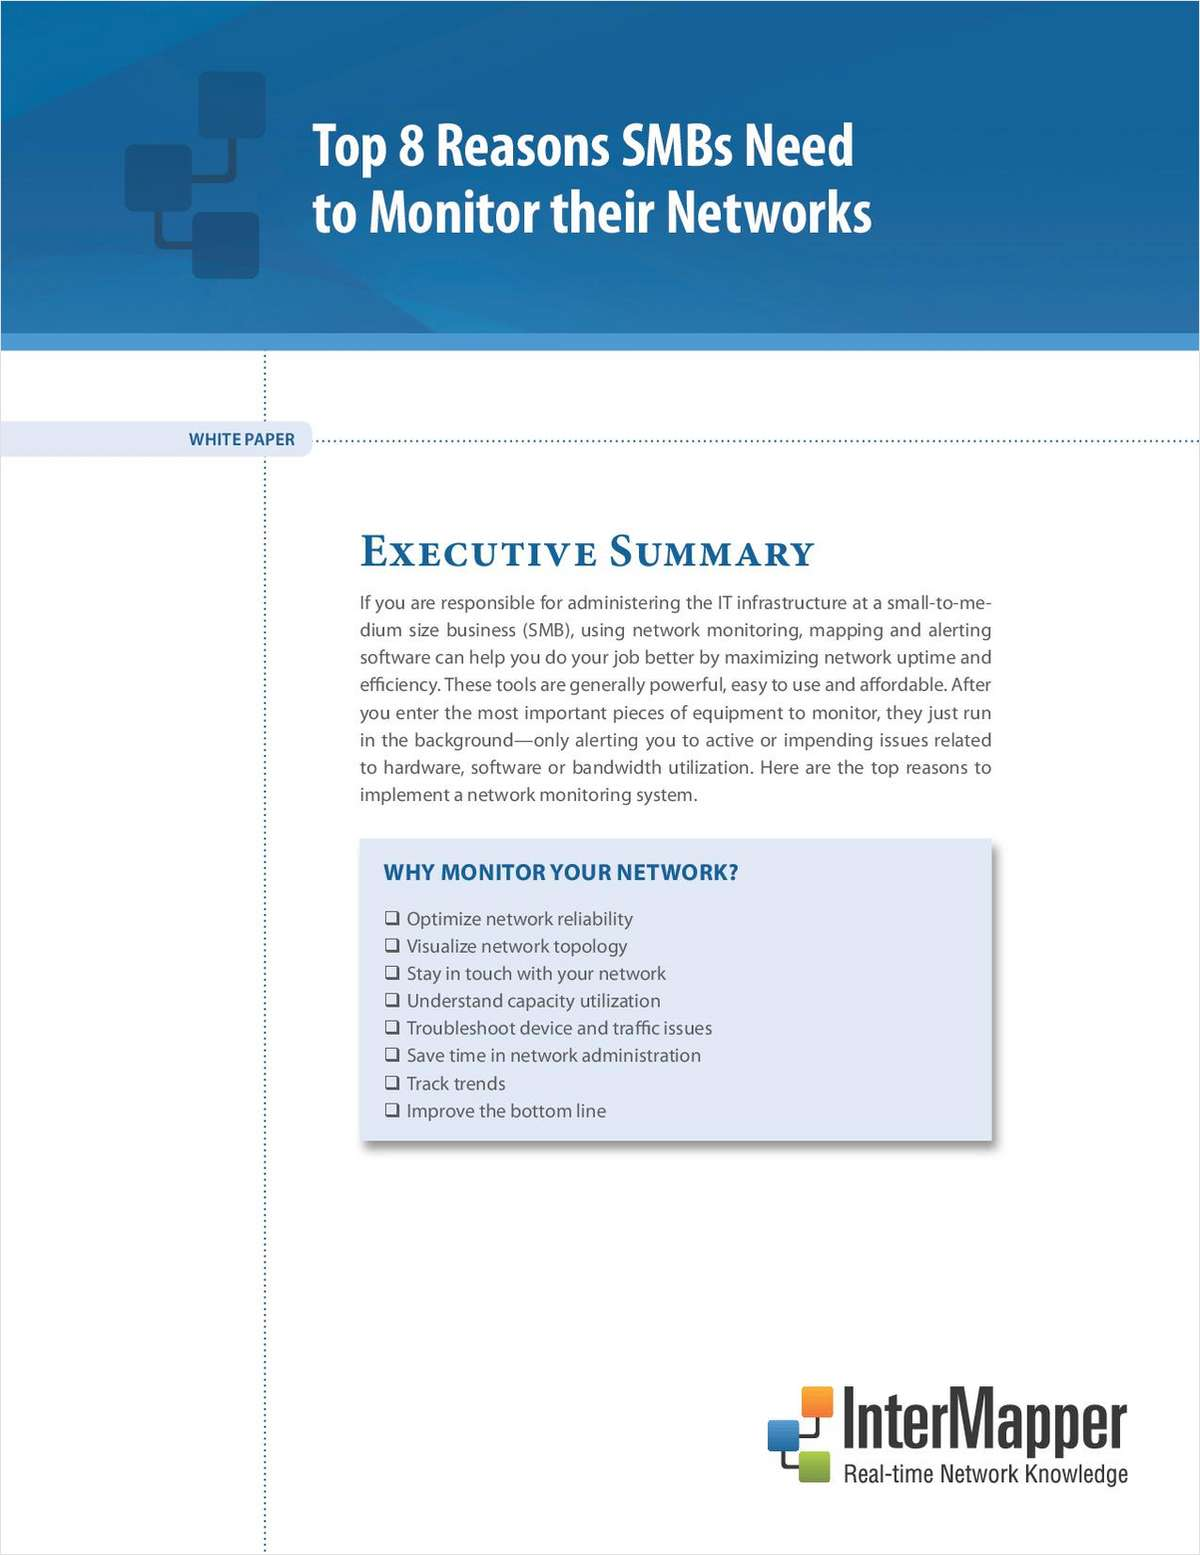 Top 8 Reasons SMBs Need to Monitor their Networks